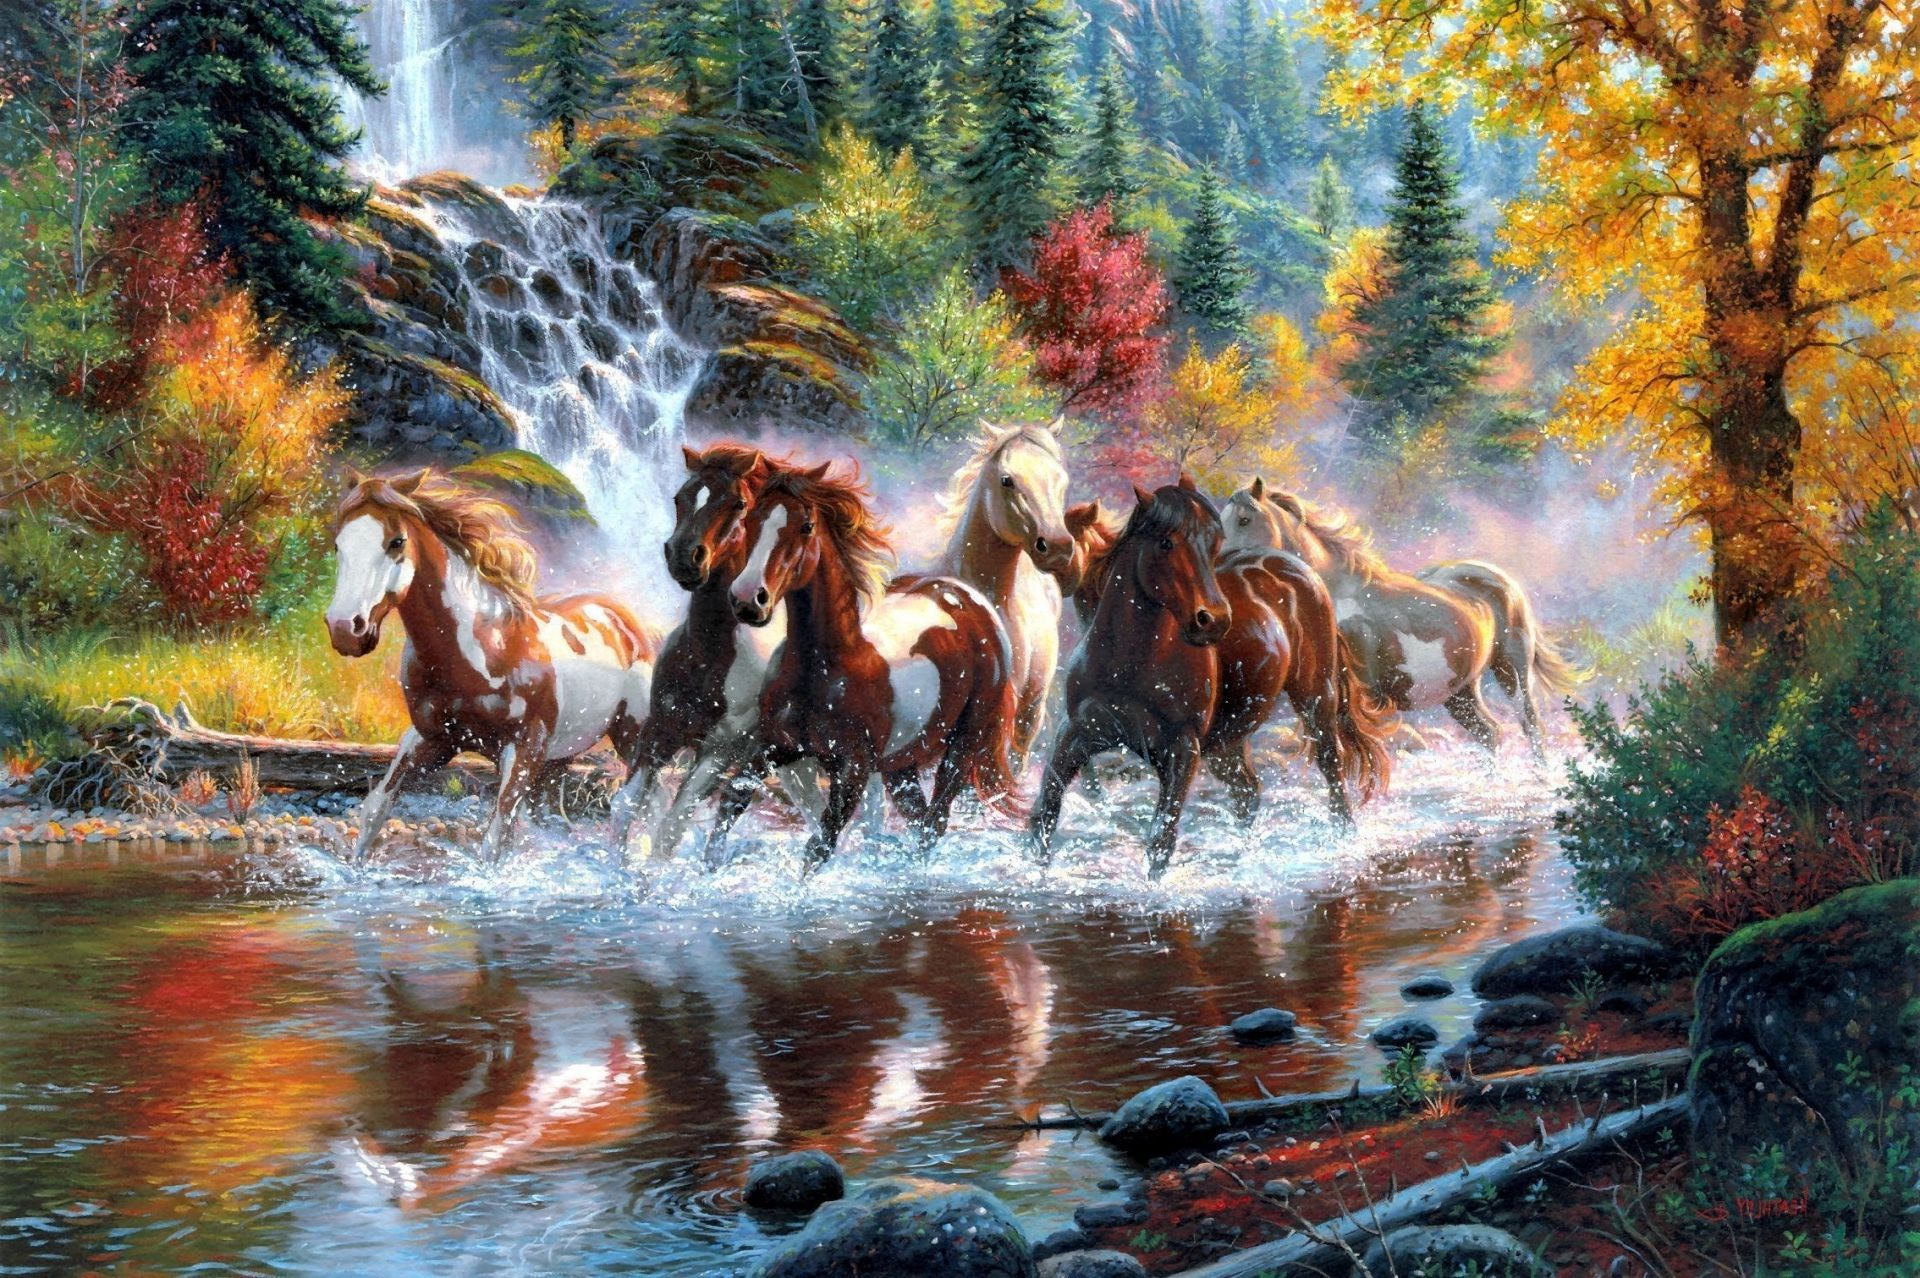 Horses The Horses Waterfall Forest Autumn River By 7 Horse